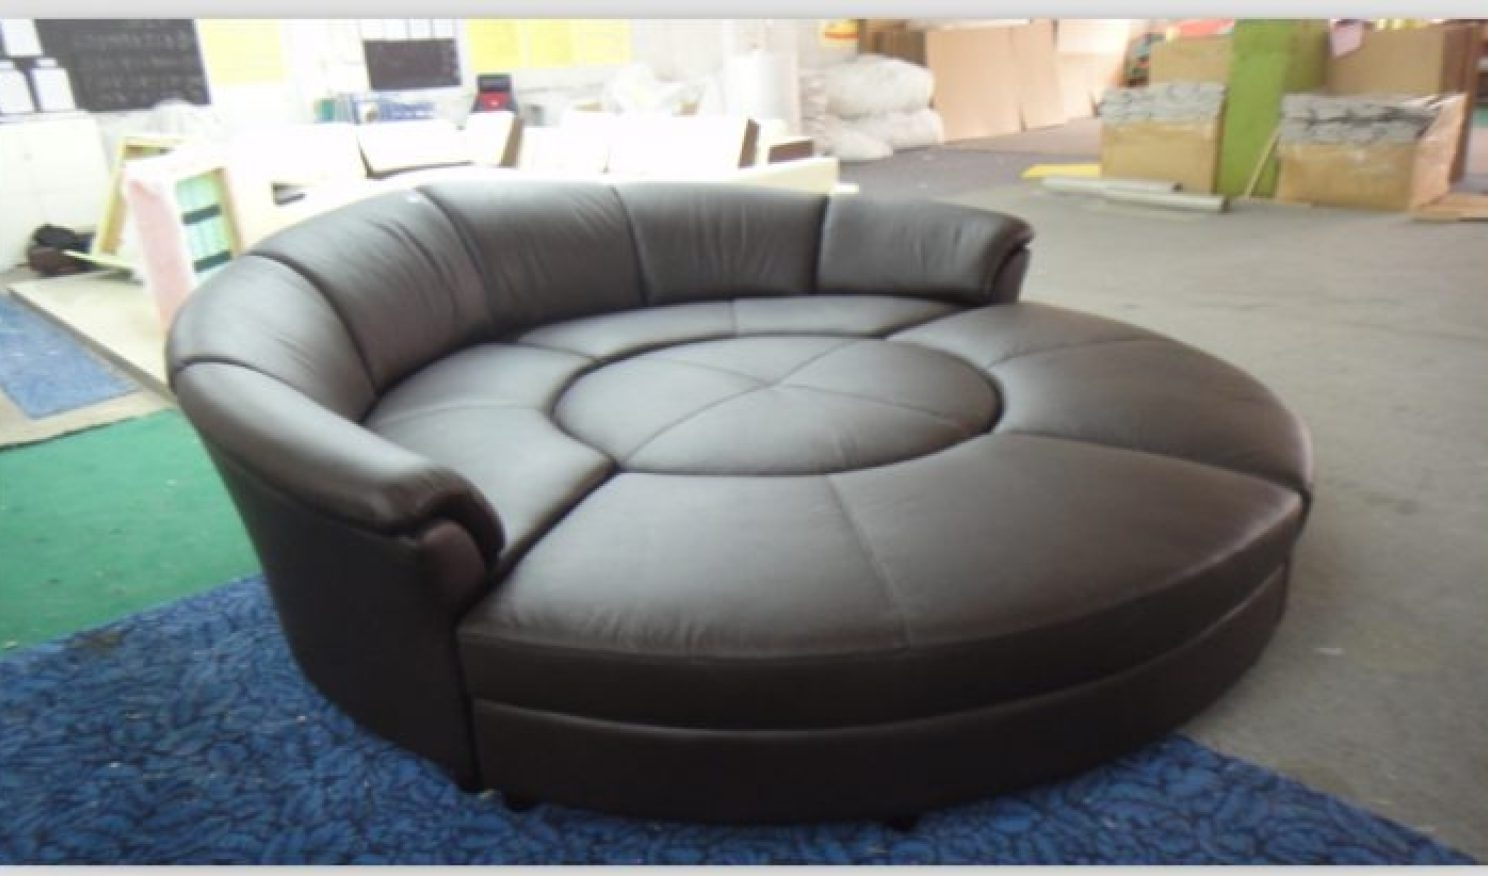 Preferred Sofa : Sofa Cute Big Chairs Stunning Circular Chair Explore Round Inside Big Sofa Chairs (View 18 of 20)